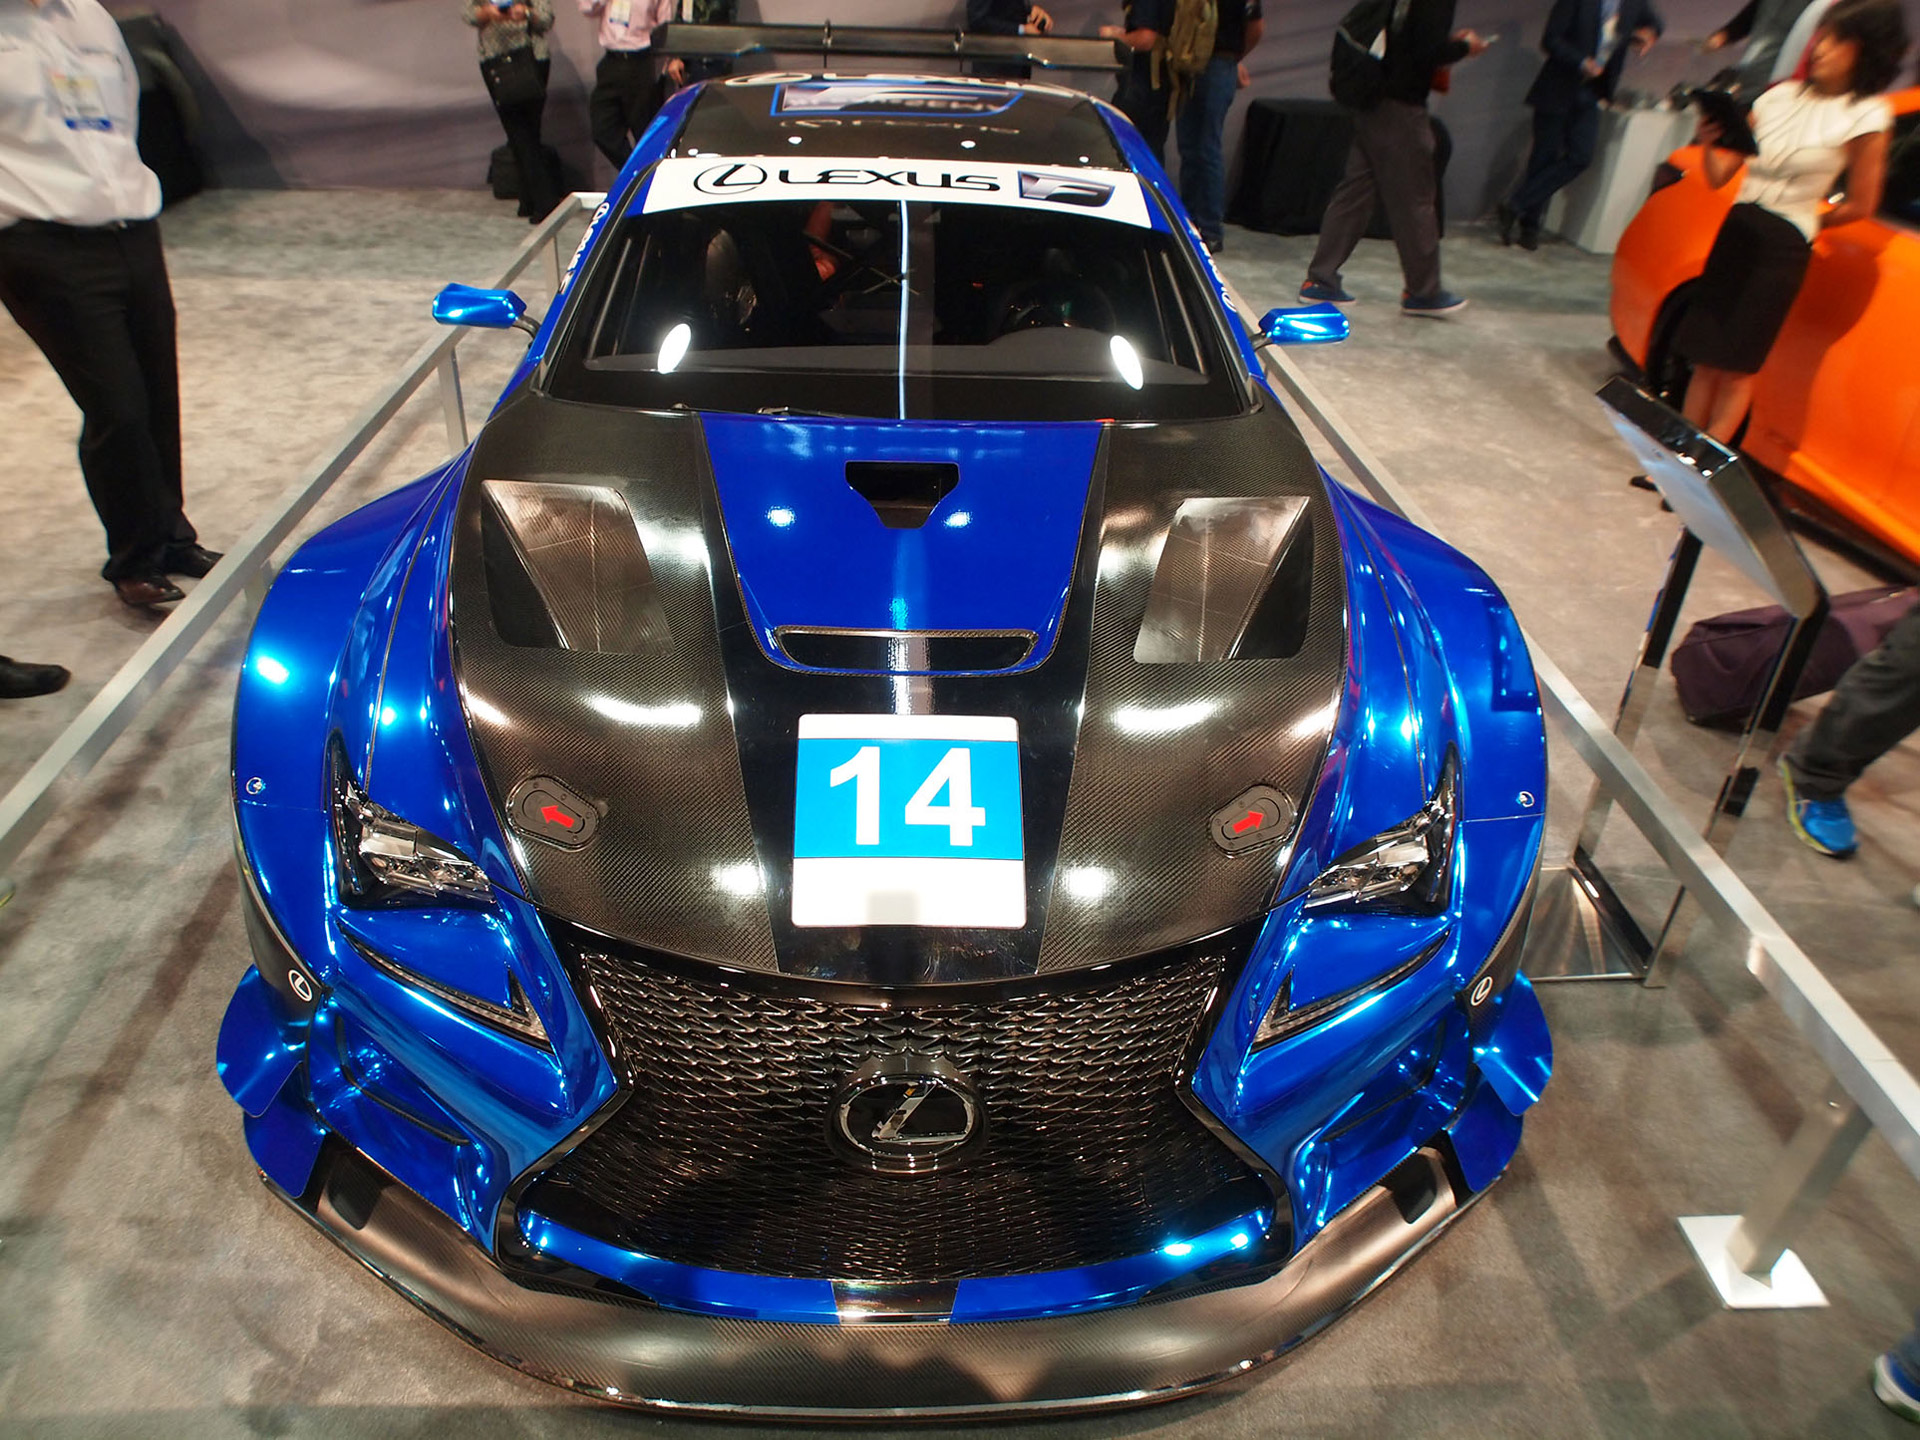 https://images.hgmsites.net/hug/f-performance-racing-2016-lexus-rc-f-gt3-race-car-2015-sema-show_100532629_h.jpg